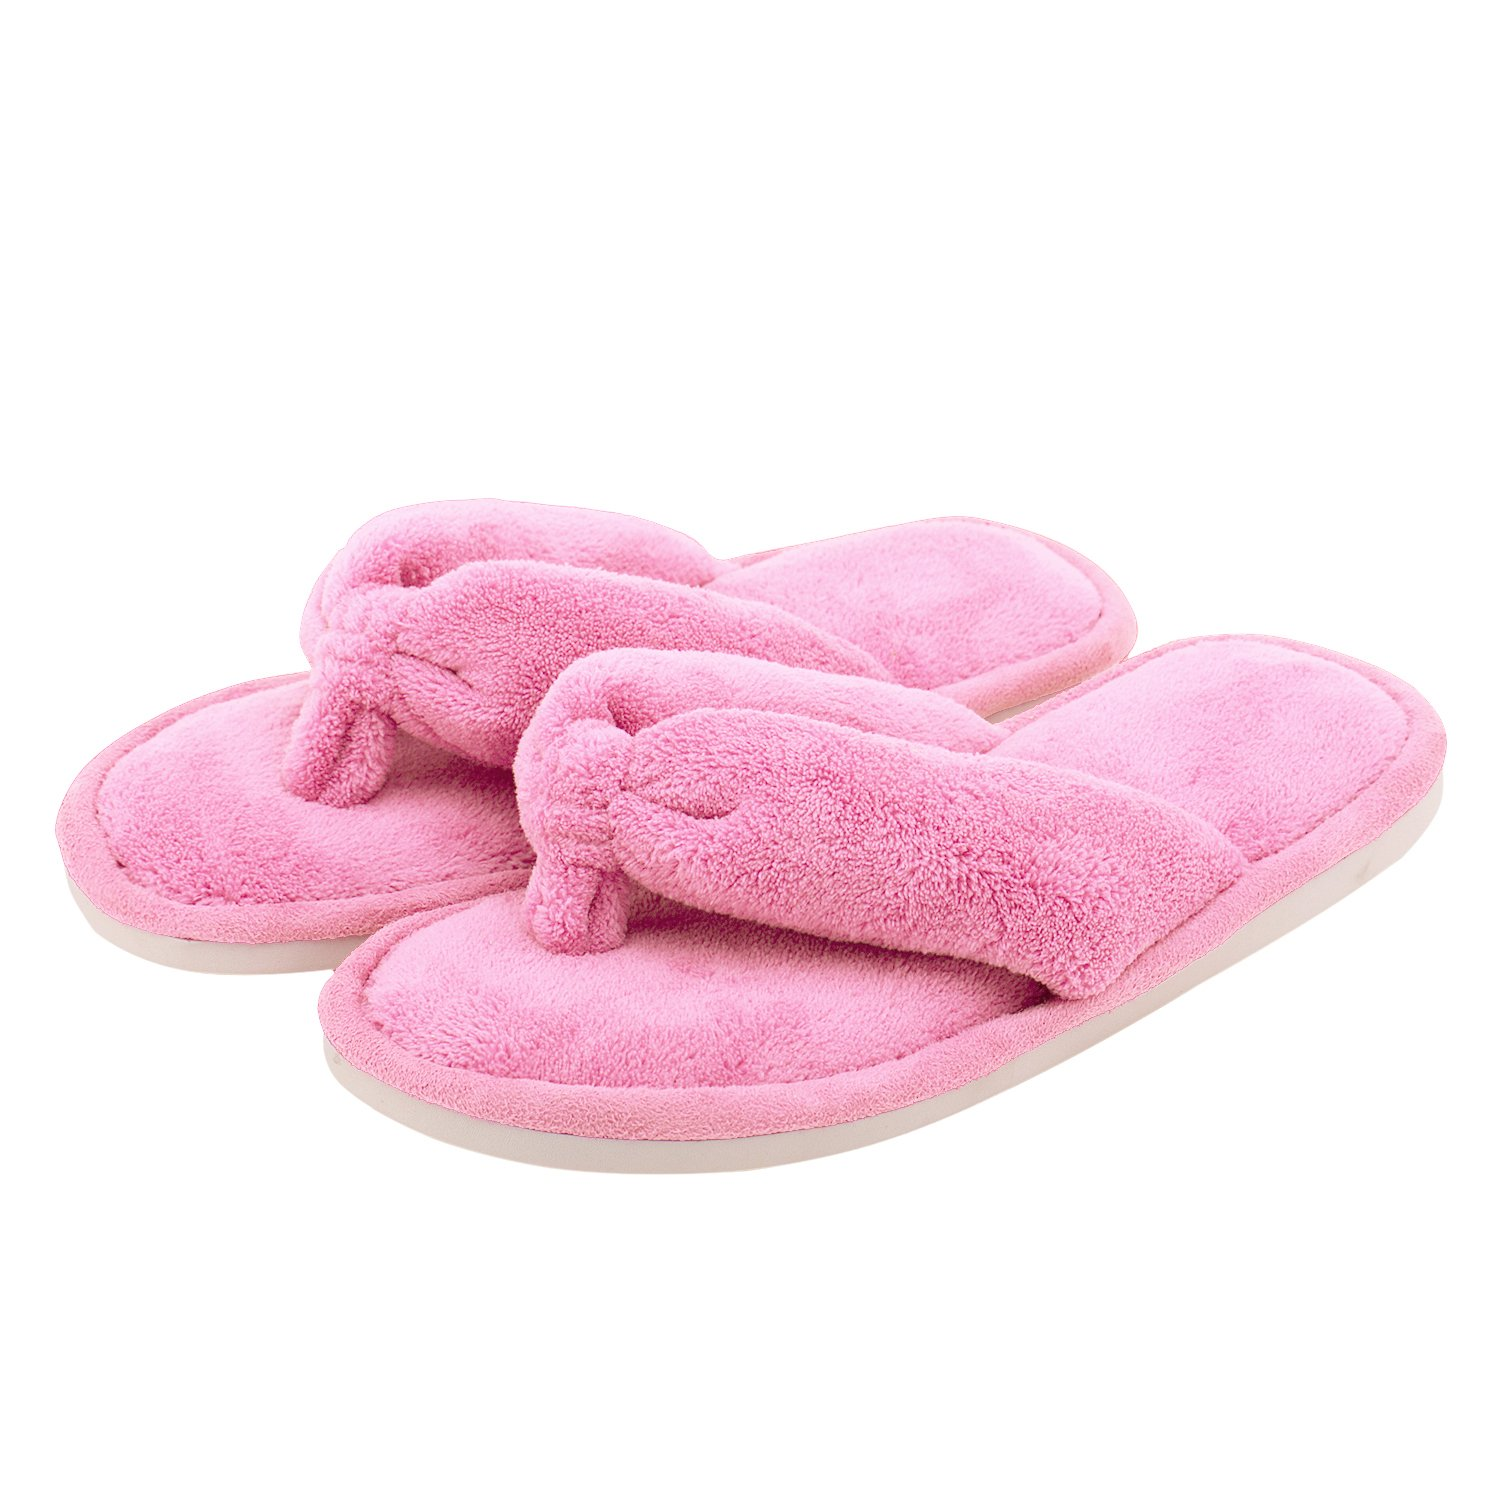 Indoor Slippers for Women Open Toe, Soft Plush Anti Slip Thong Slippers (M- US Women Size 7-8, Pink)